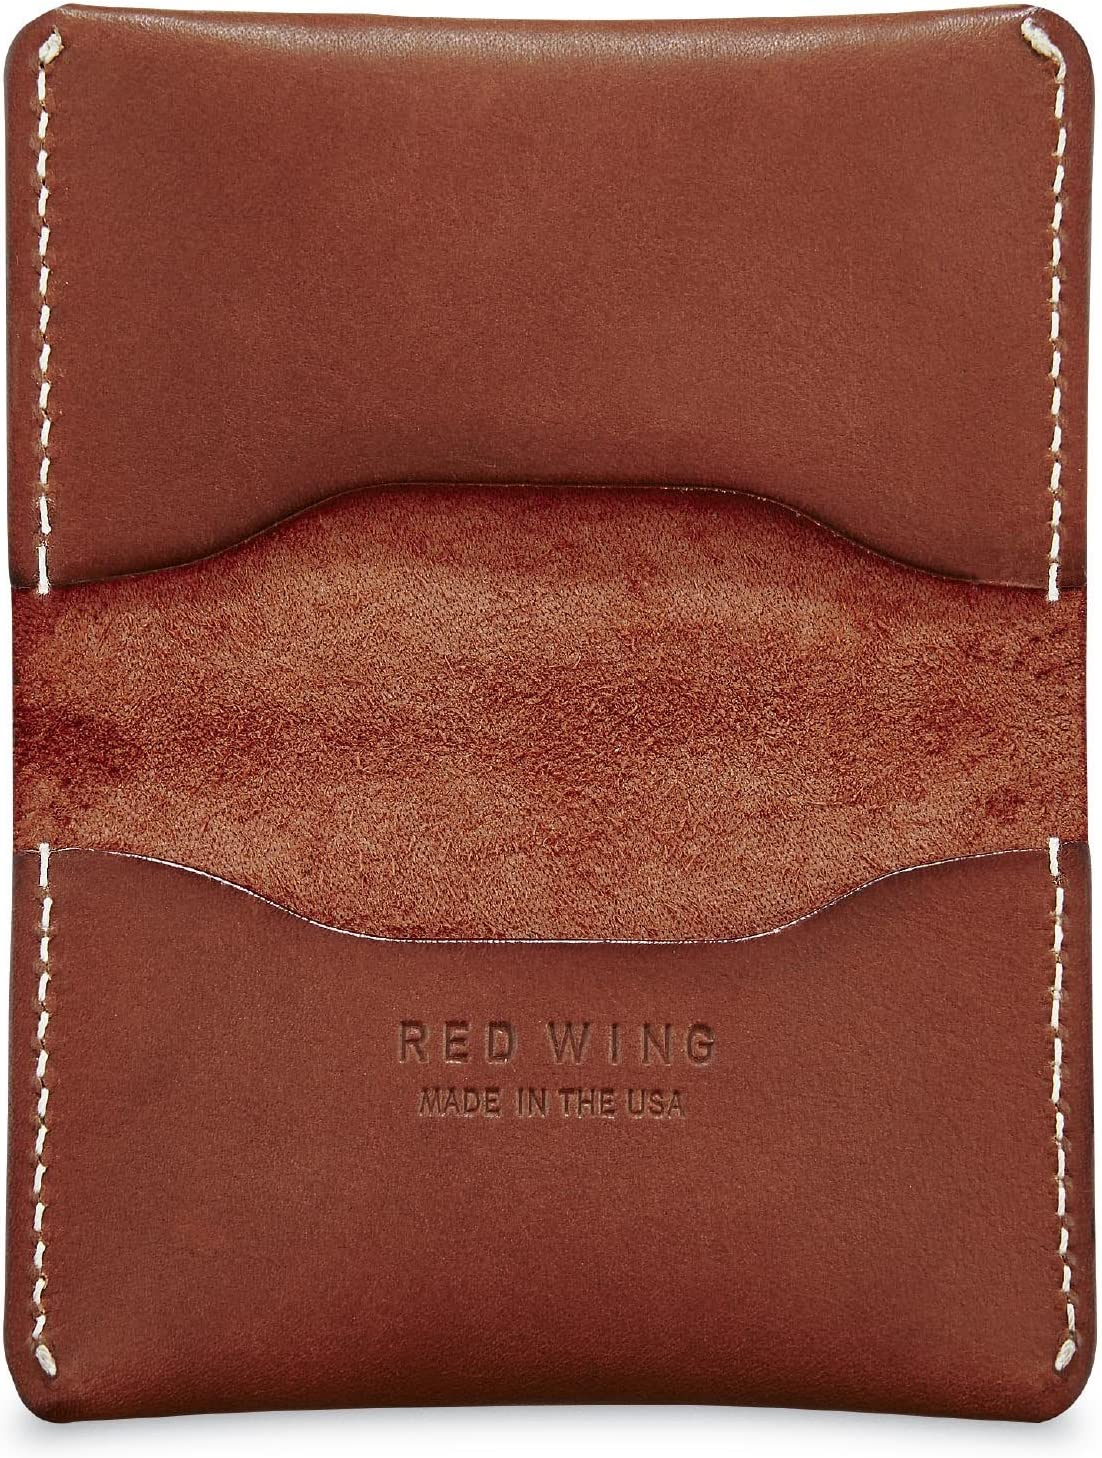 Black Oro and Tan Black Red Wing Card Holder Wallet